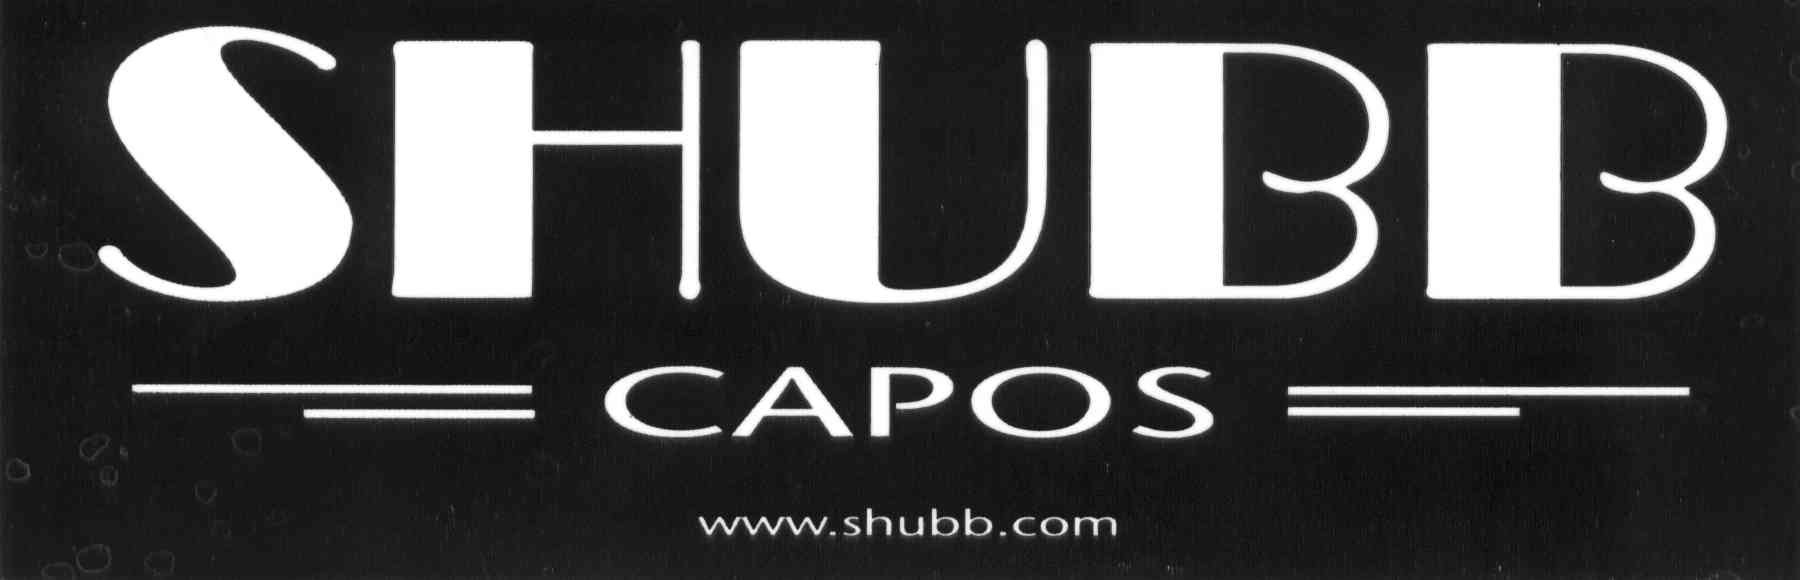 - Clara Baker proudly uses and endorses Shubb Capos. www.shubb.com